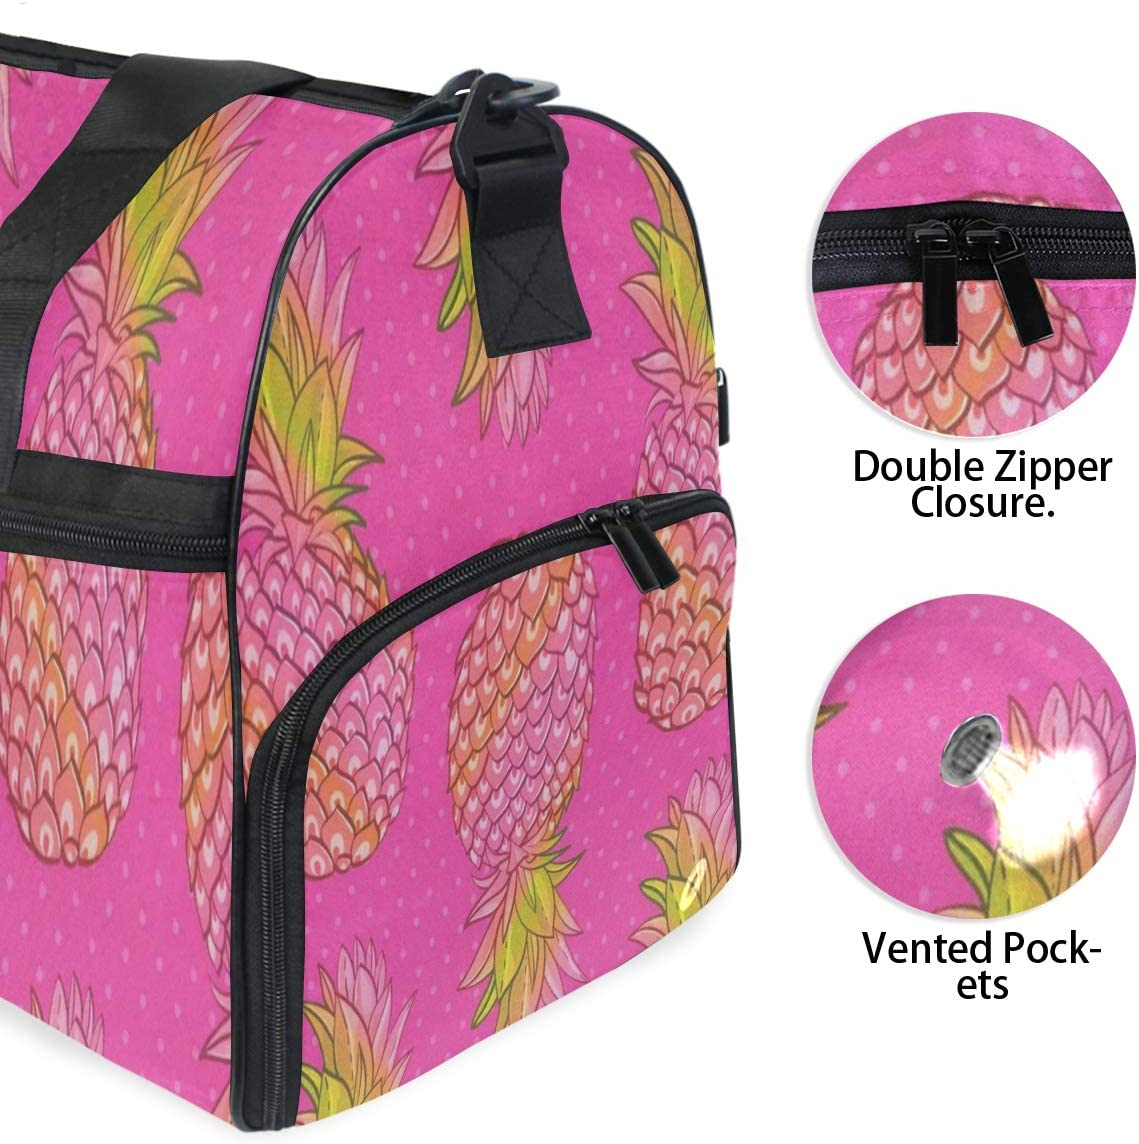 Pineapple Creative Gym Bags for Men/&Women Duffel Bag Casual Fashion Bag with Shoe Compartment